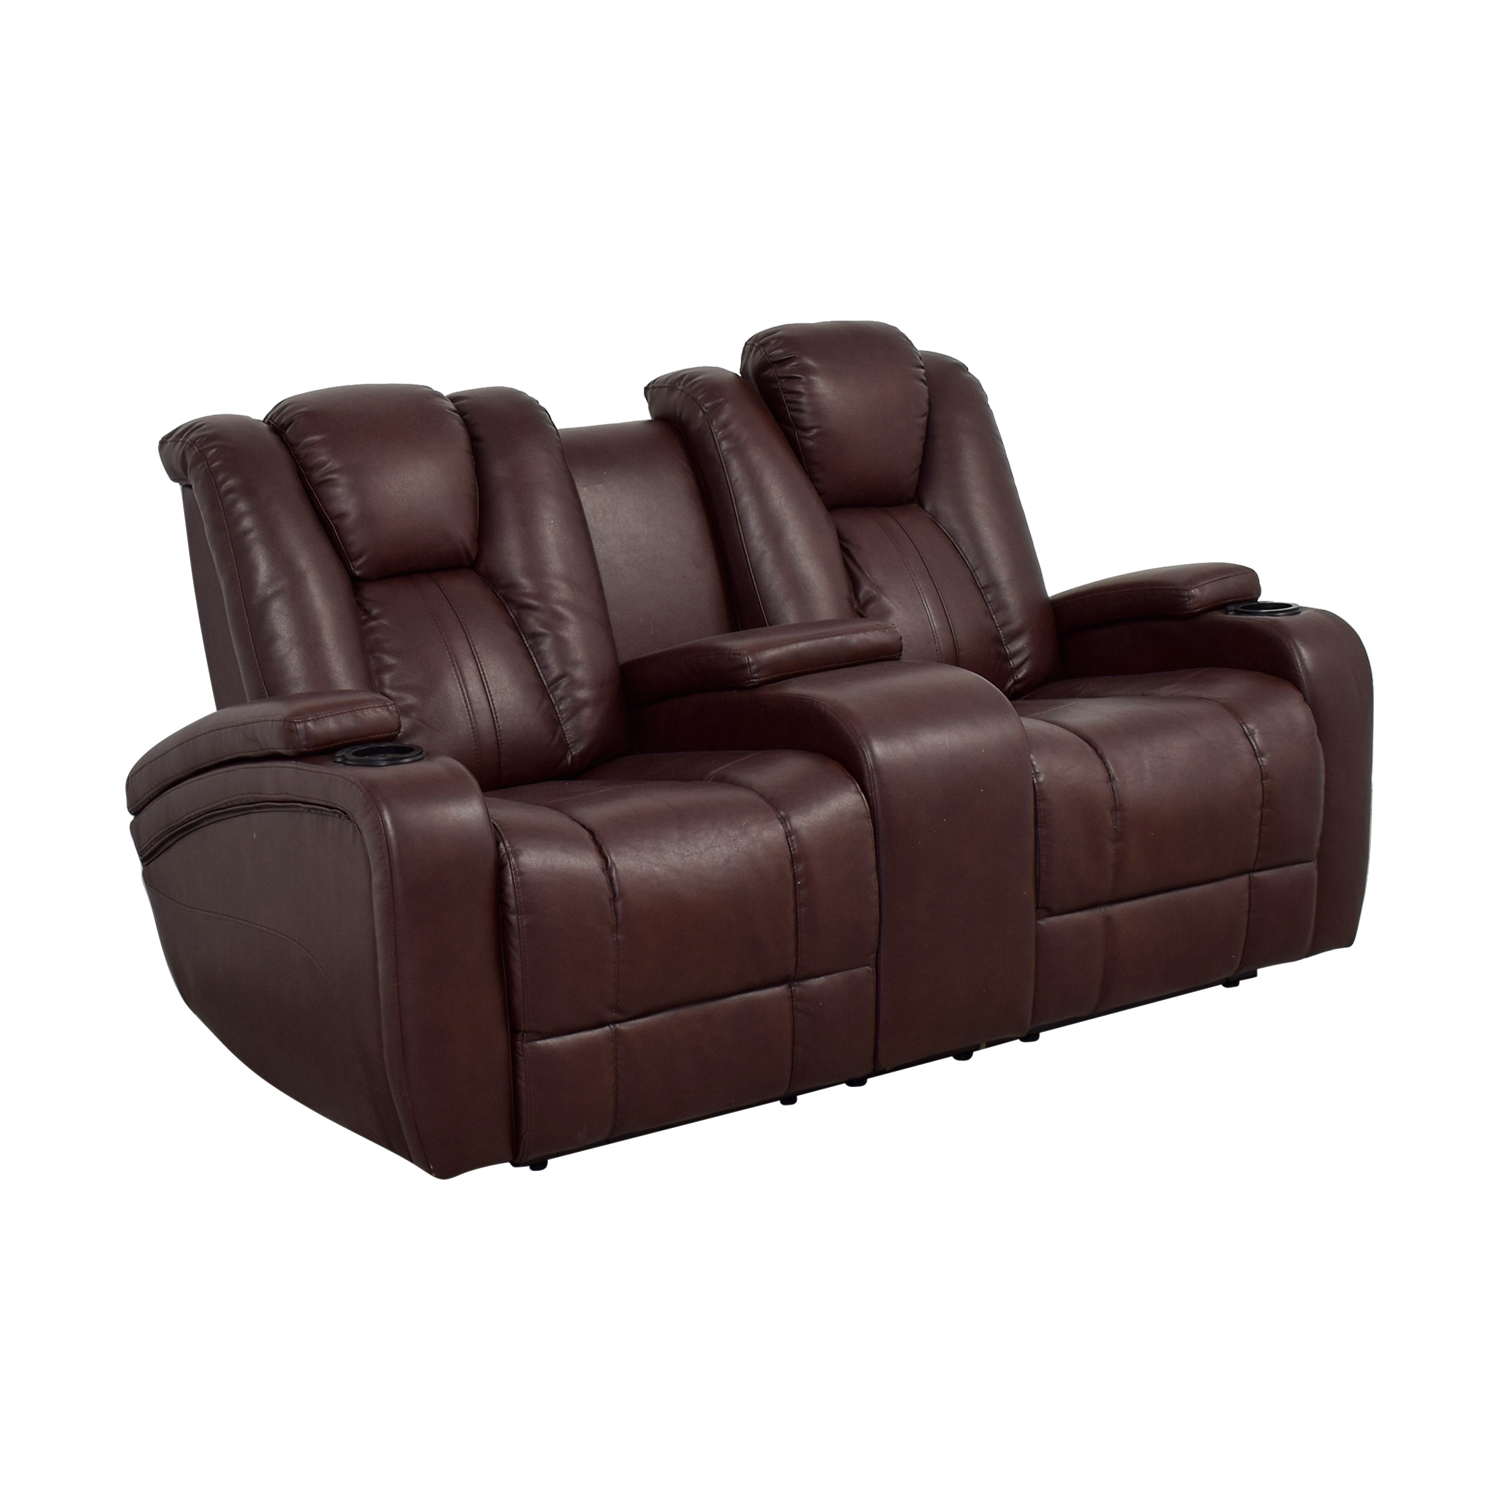 Strange 76 Off Bobs Discount Furniture Bobs Furniture Brown Power Dual Reclining Console Loveseat Sofas Customarchery Wood Chair Design Ideas Customarcherynet